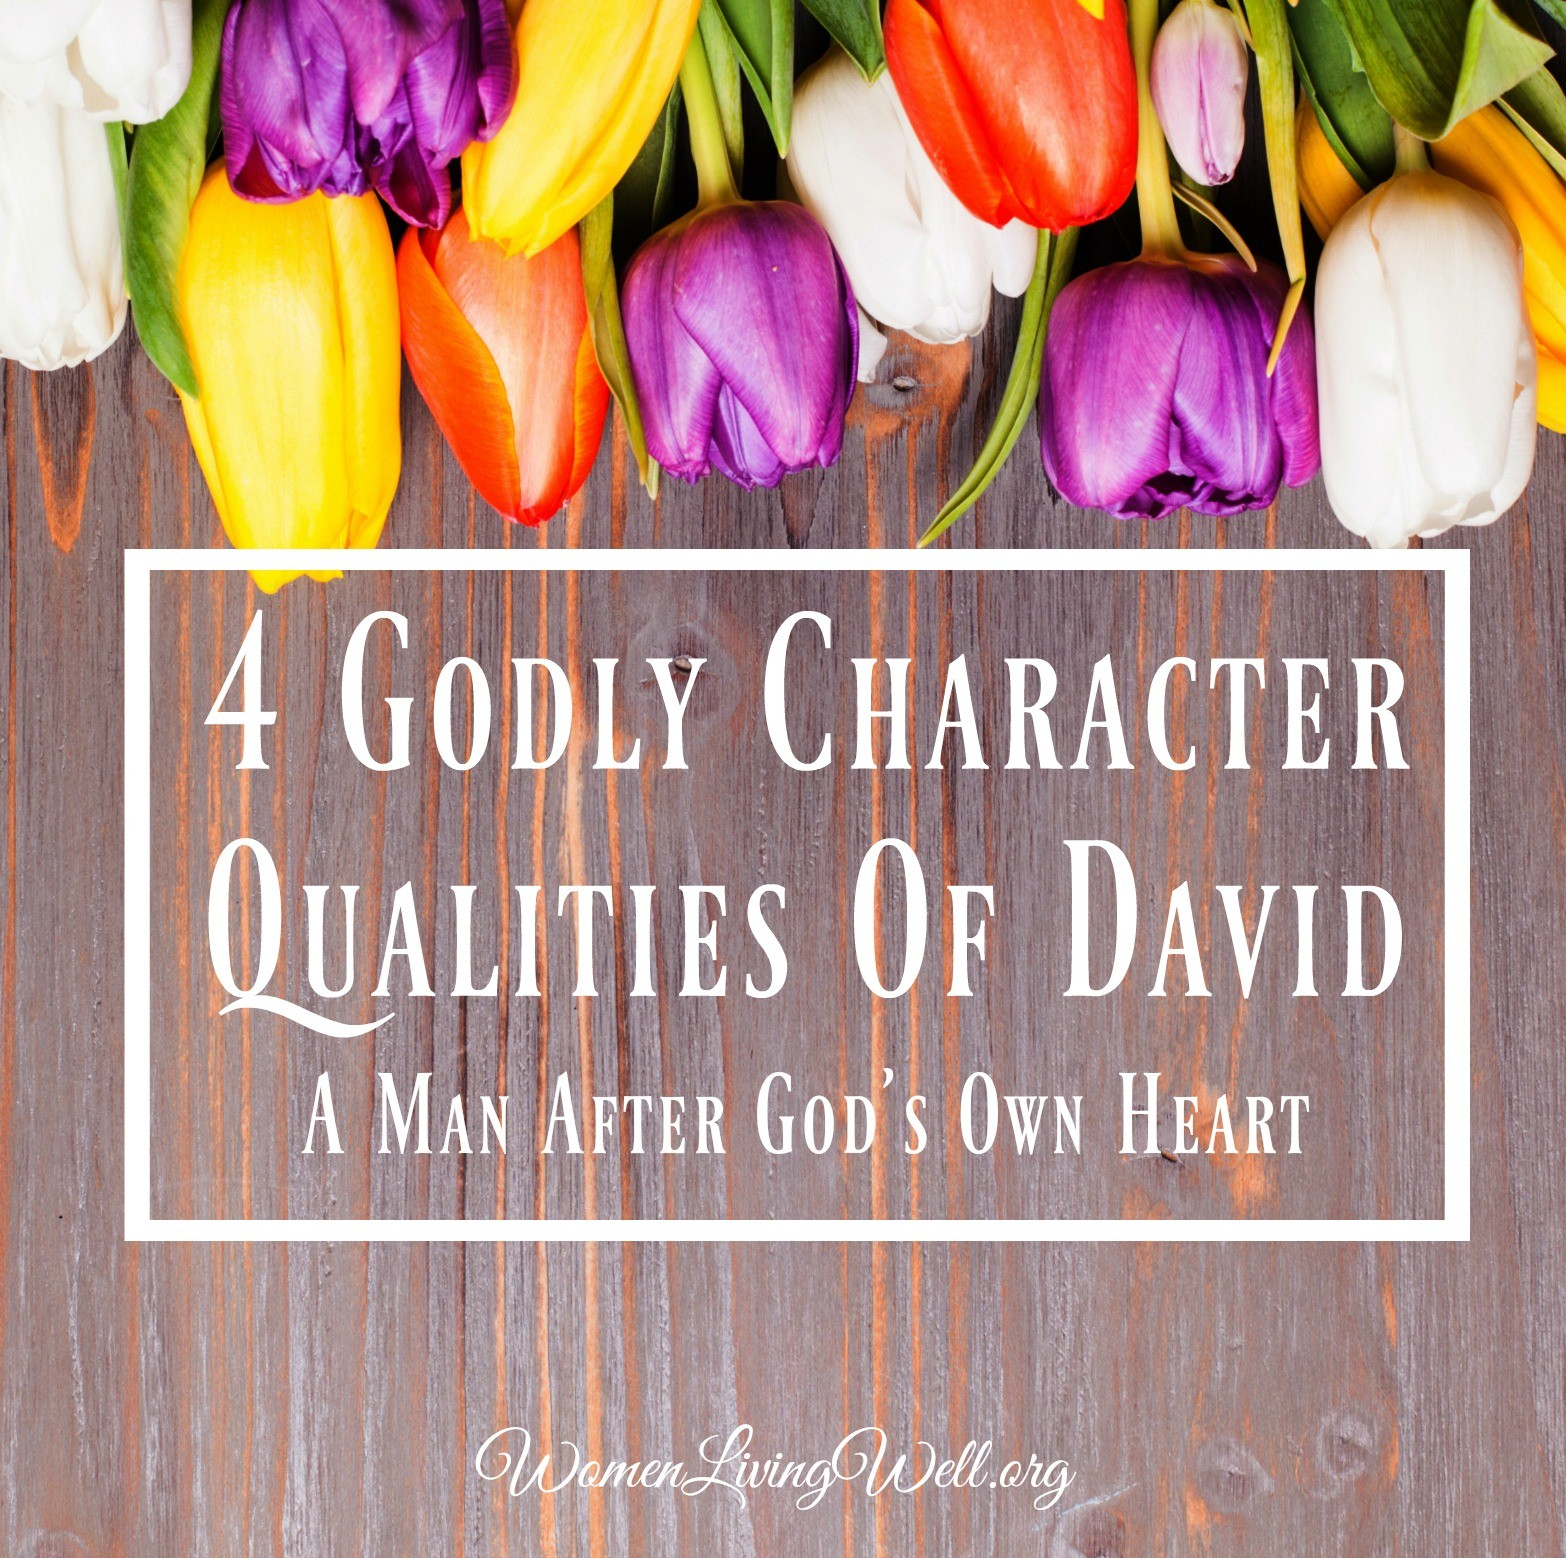 4 Godly Character Qualities Of David